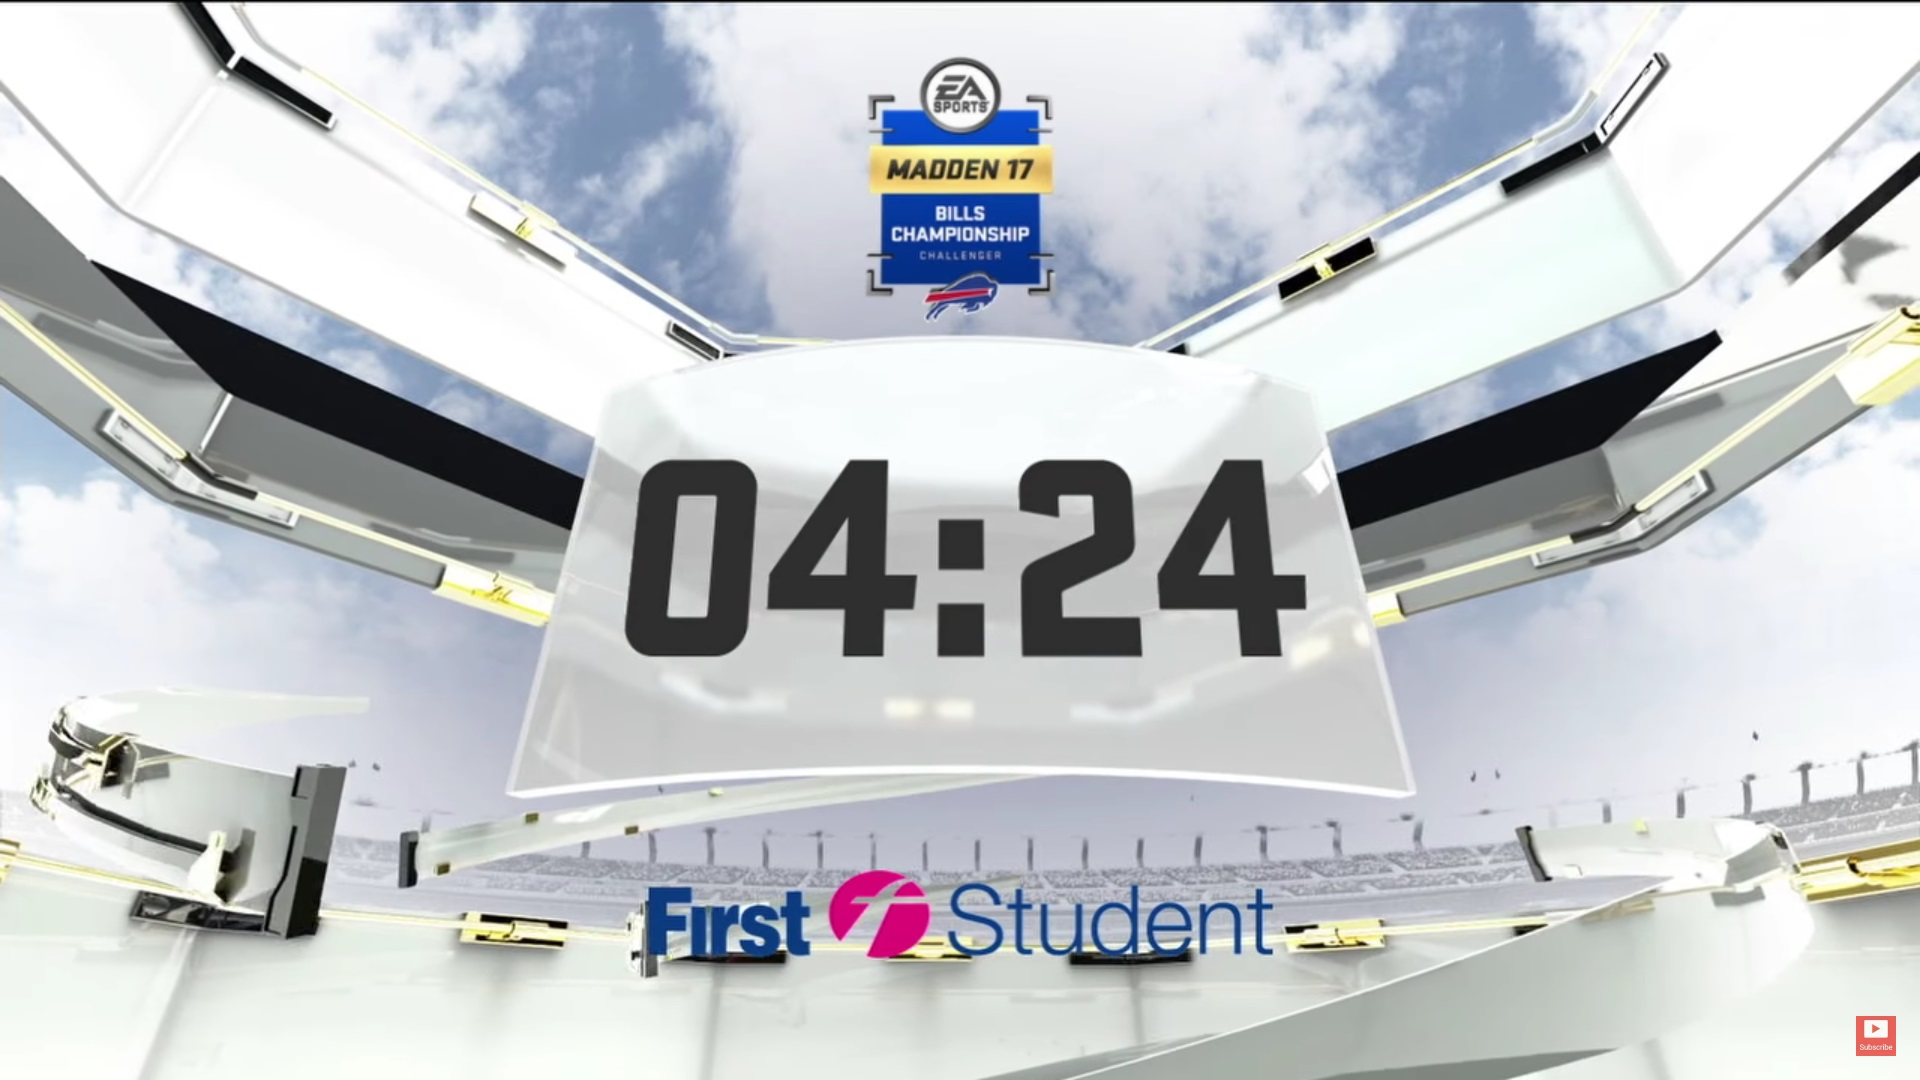 First Student Countdown Clock Placement (Photo: YouTube)